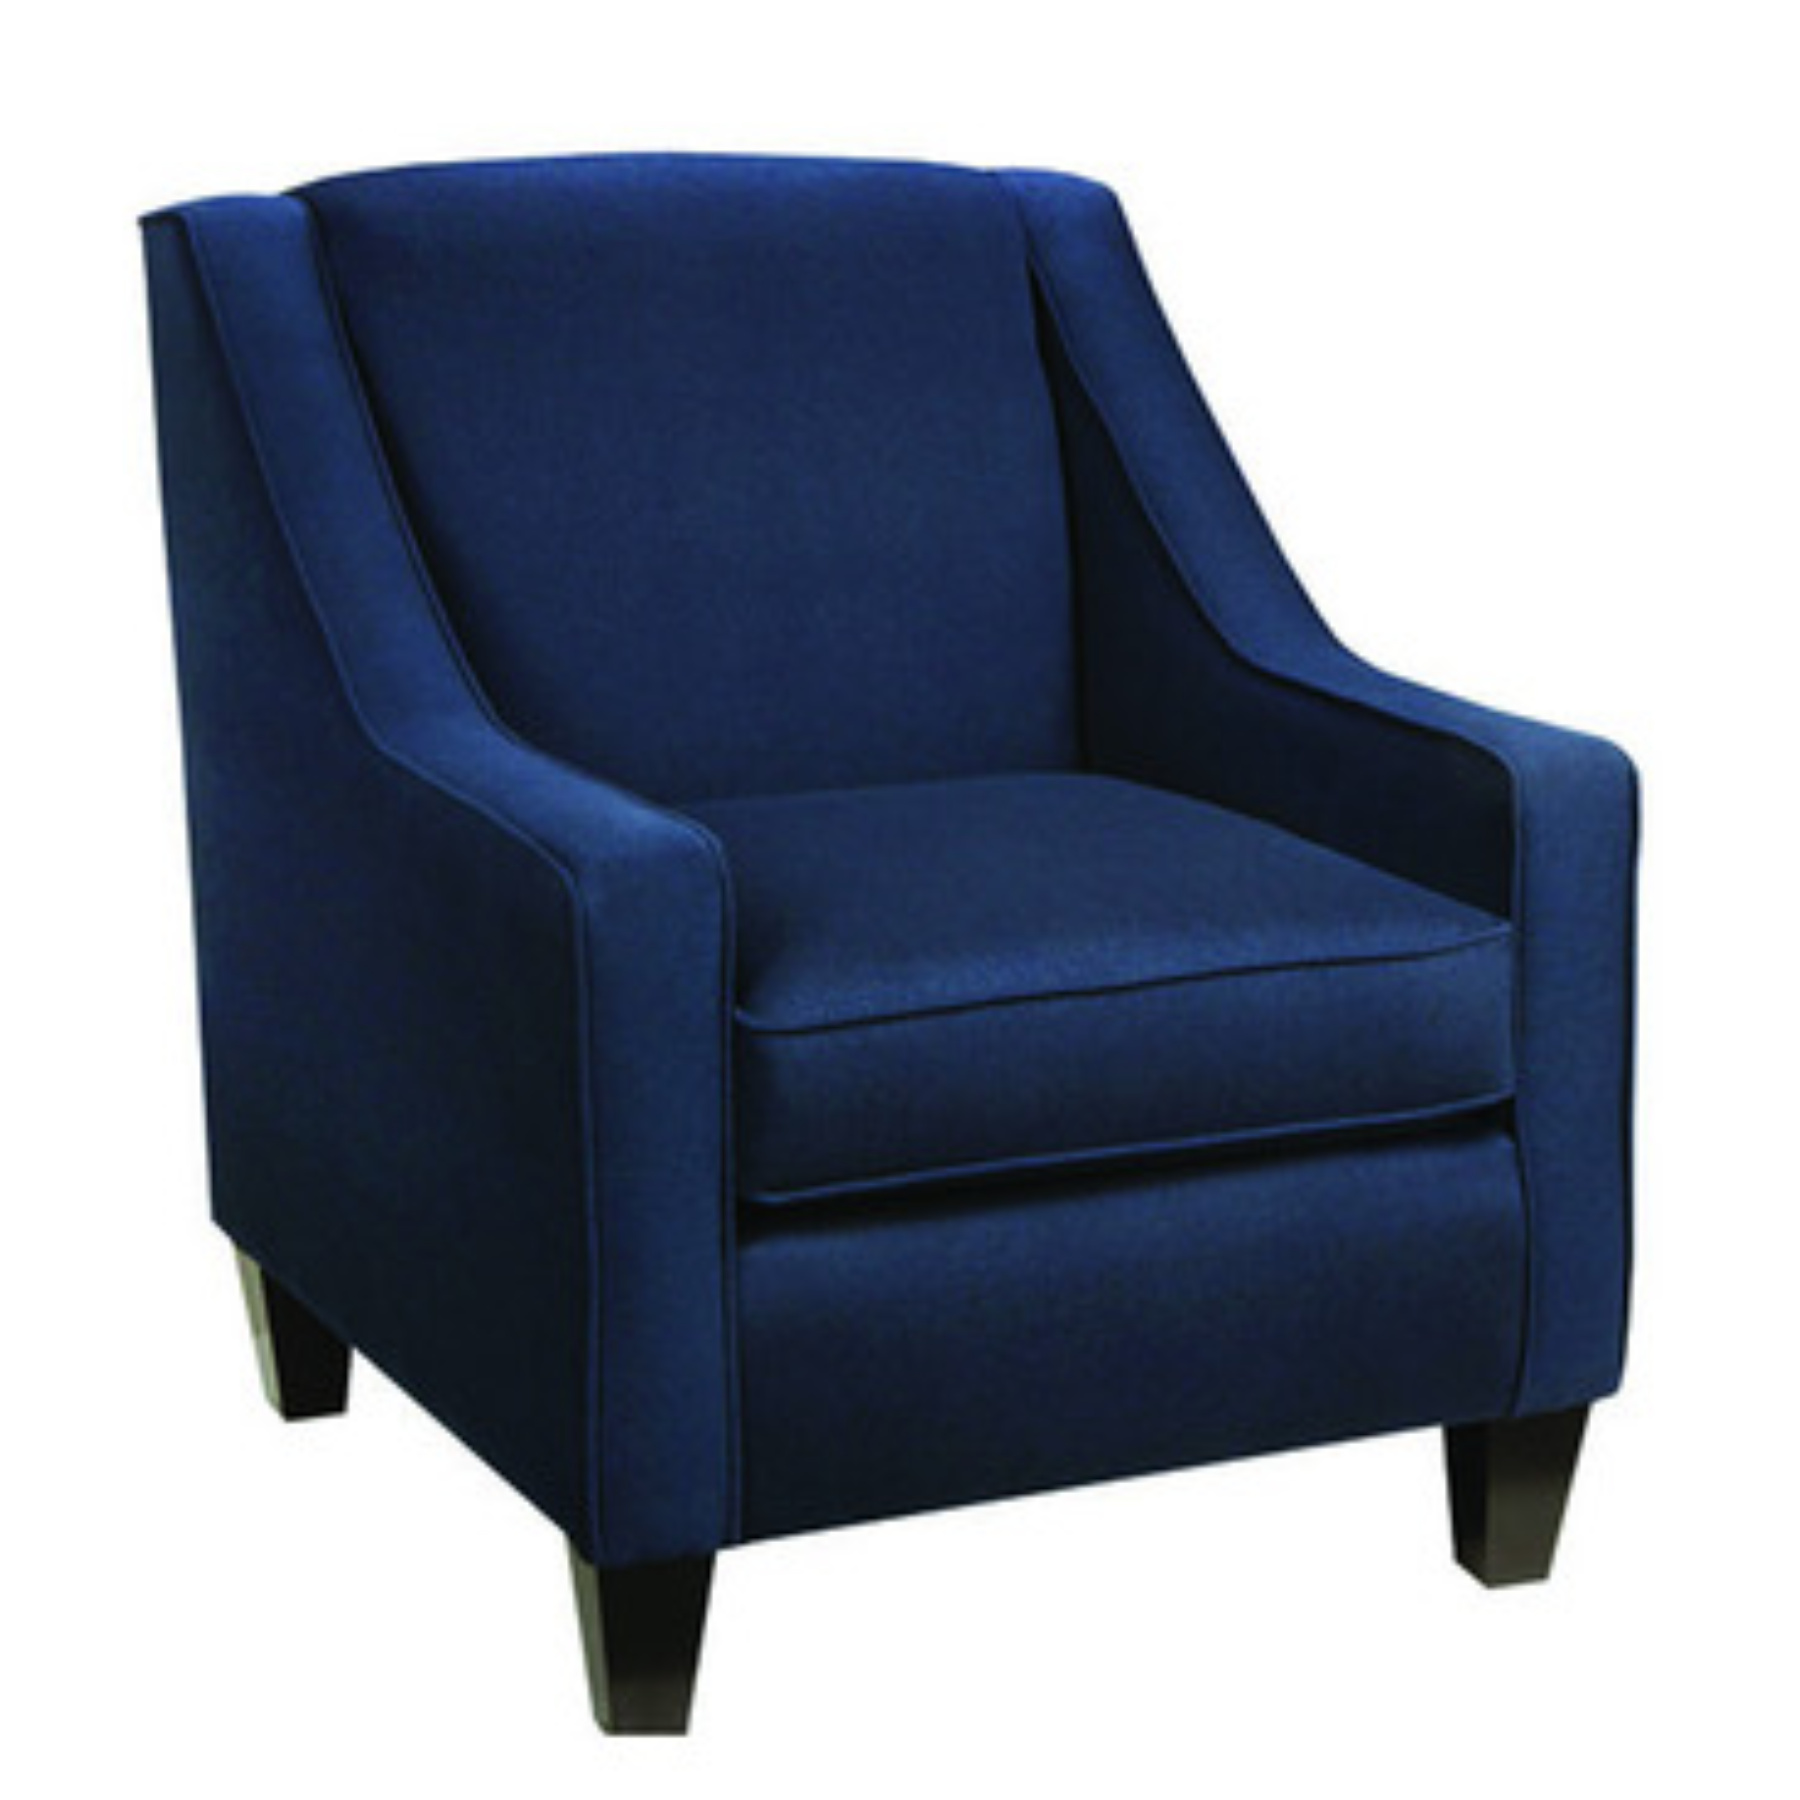 velvet club chair blue upholstered chair with arm and back rest using black wooden tapered leg on white floor with contemporary occasional chairs and accent lounge chairs